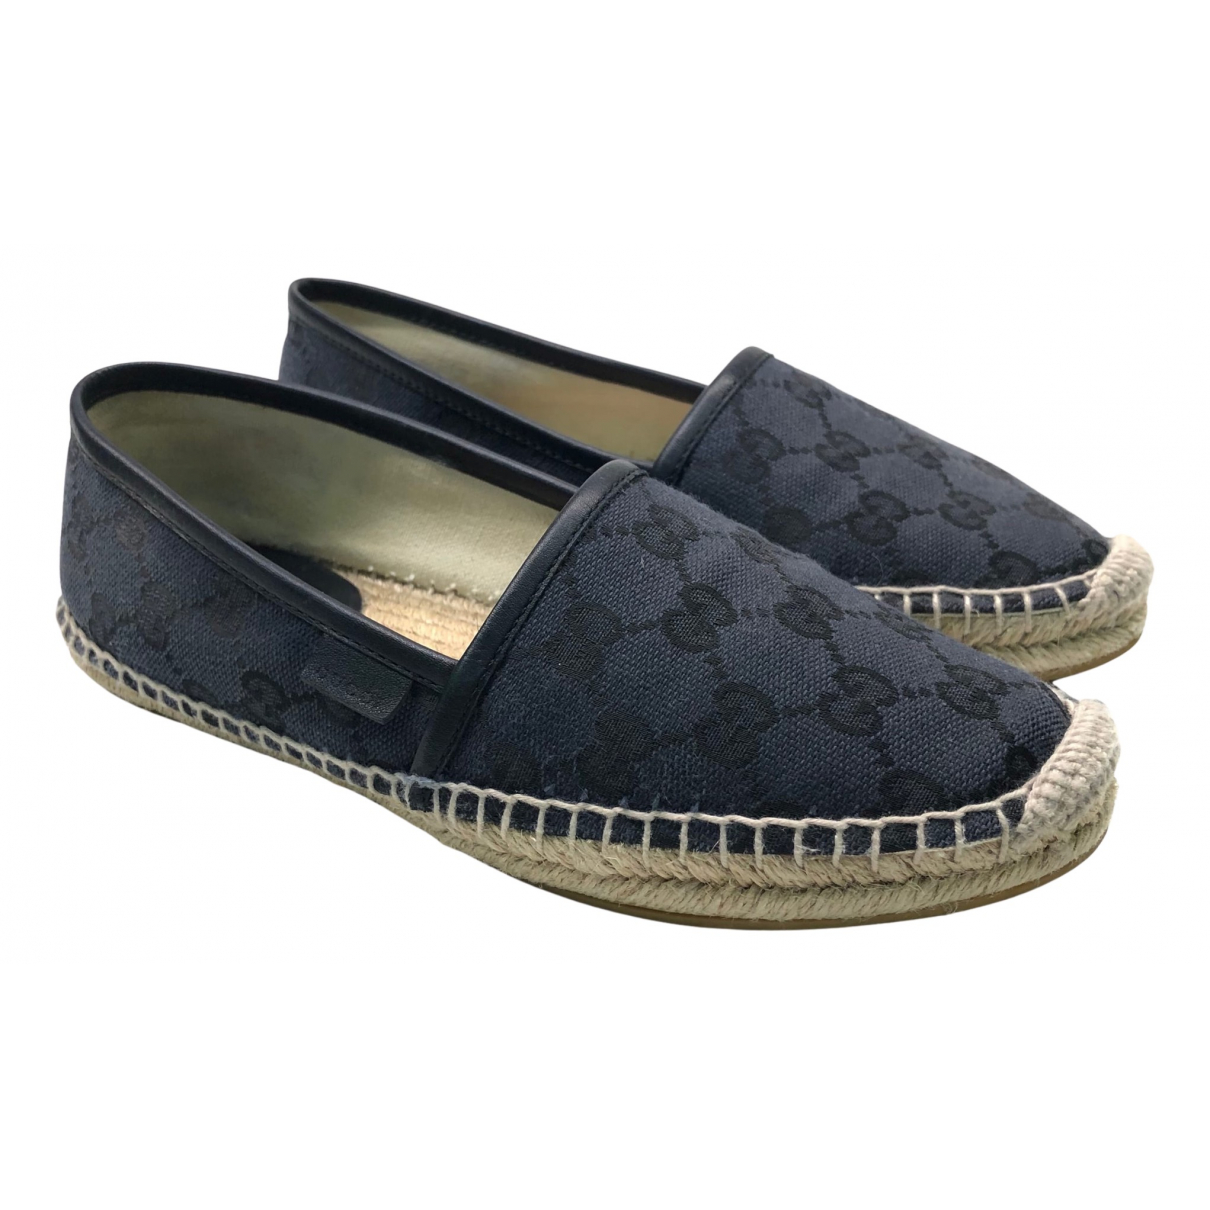 Gucci \N Black Cloth Espadrilles for Women 35.5 EU